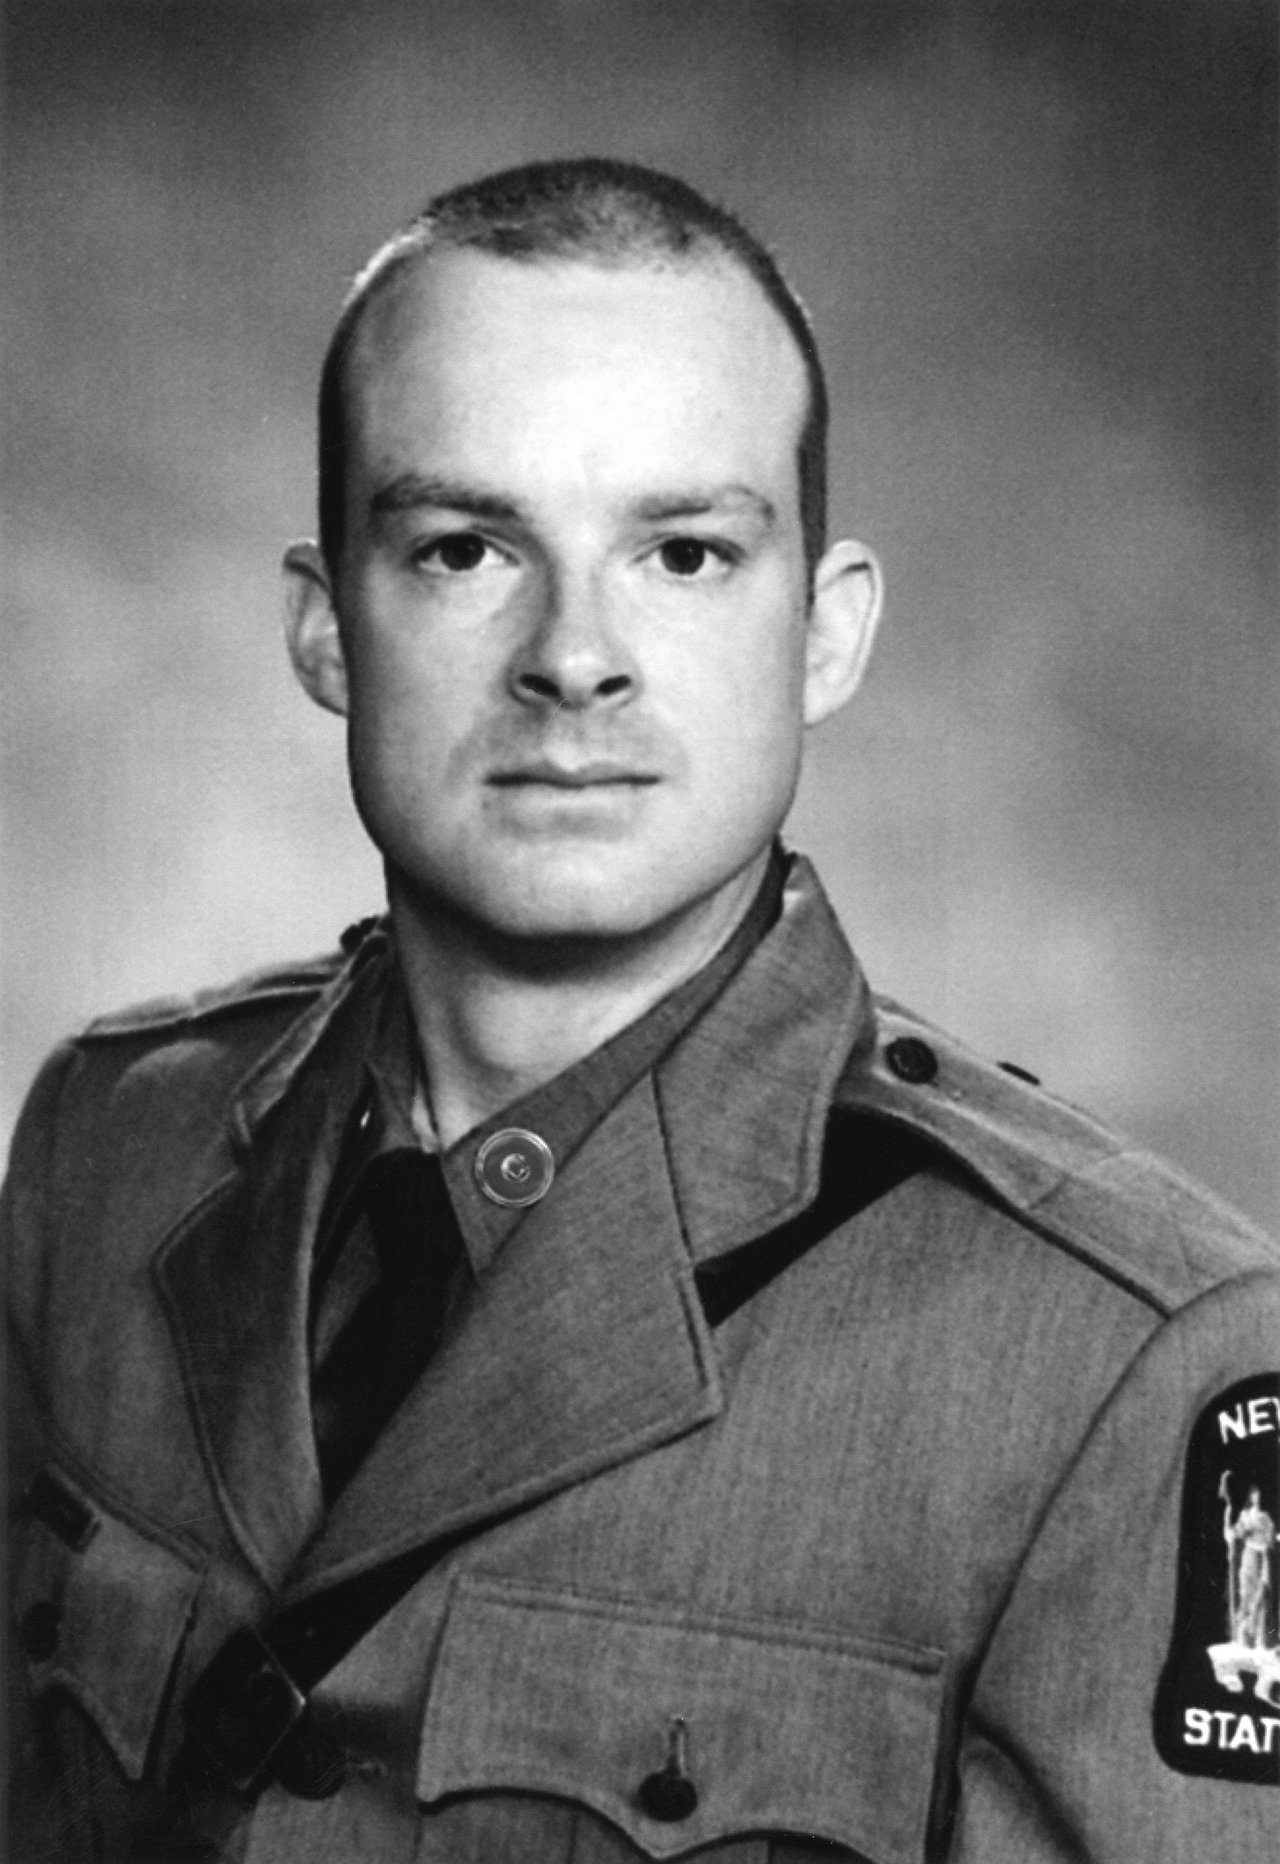 May 29, 2014 - Trooper Christopher G. Skinner